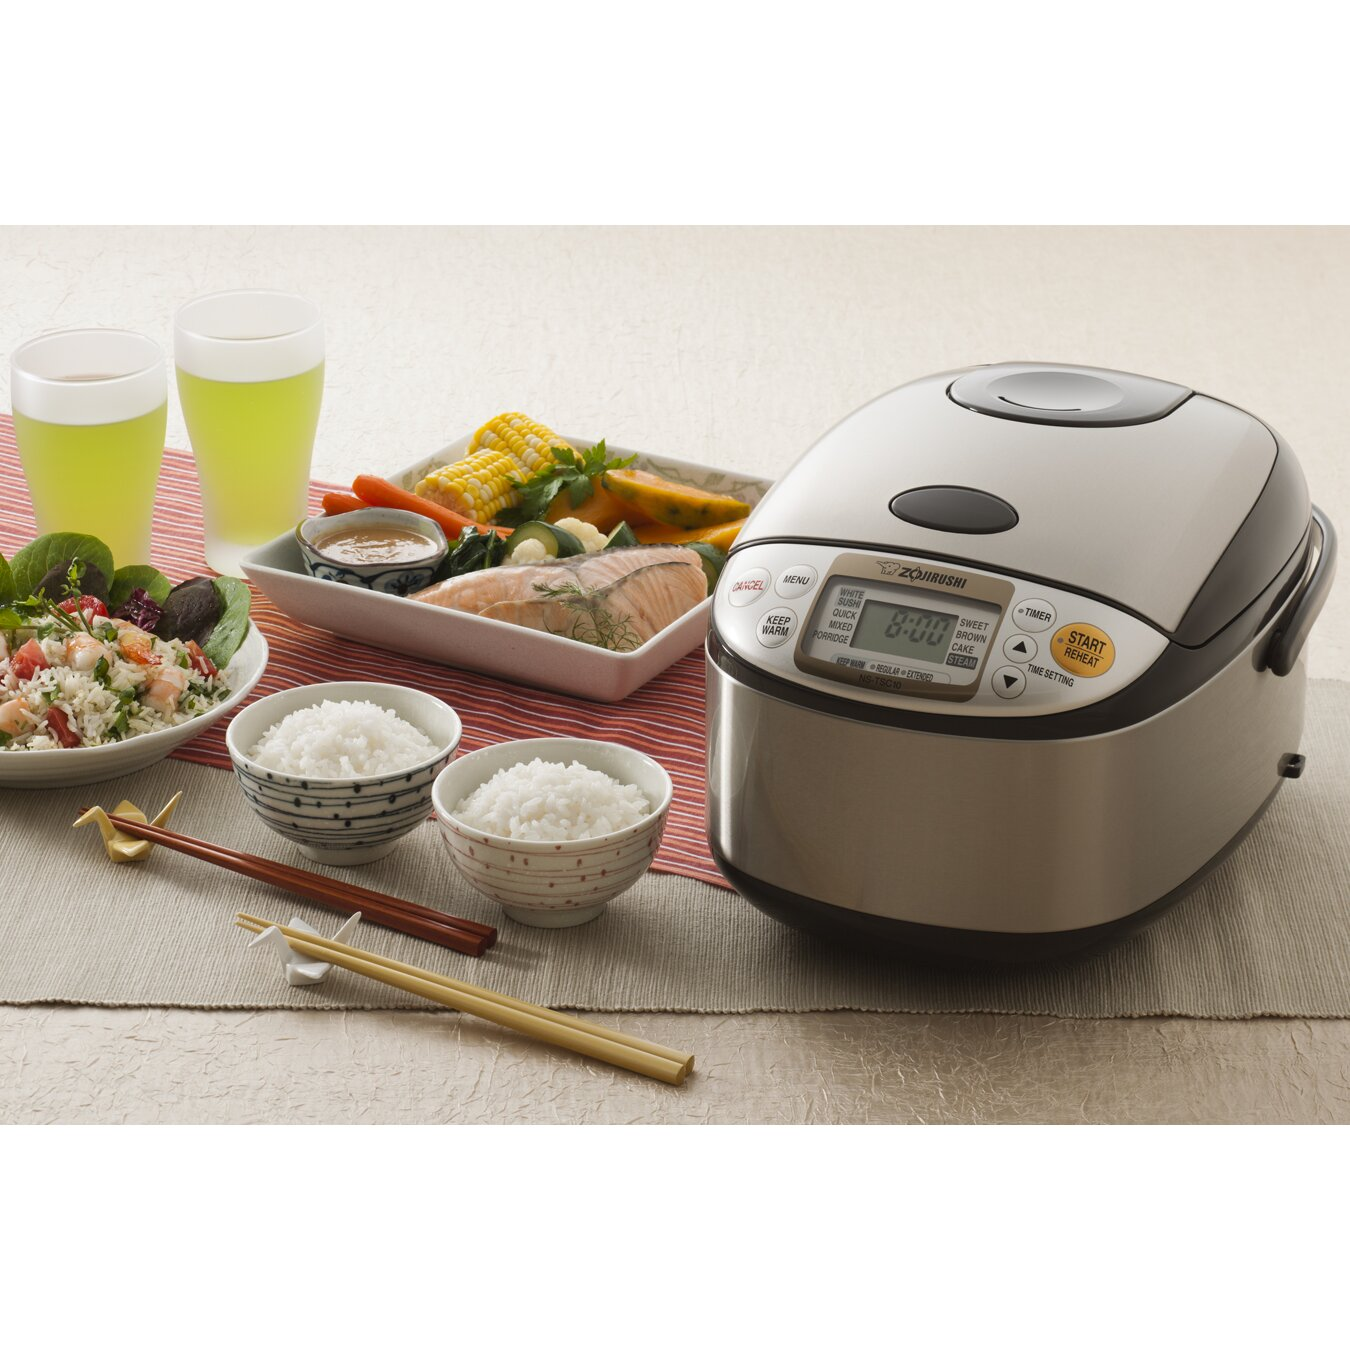 How To Cook Quinoa Automatic Rice Cooker And Warmer Micom Rice Cooker &  Warmer